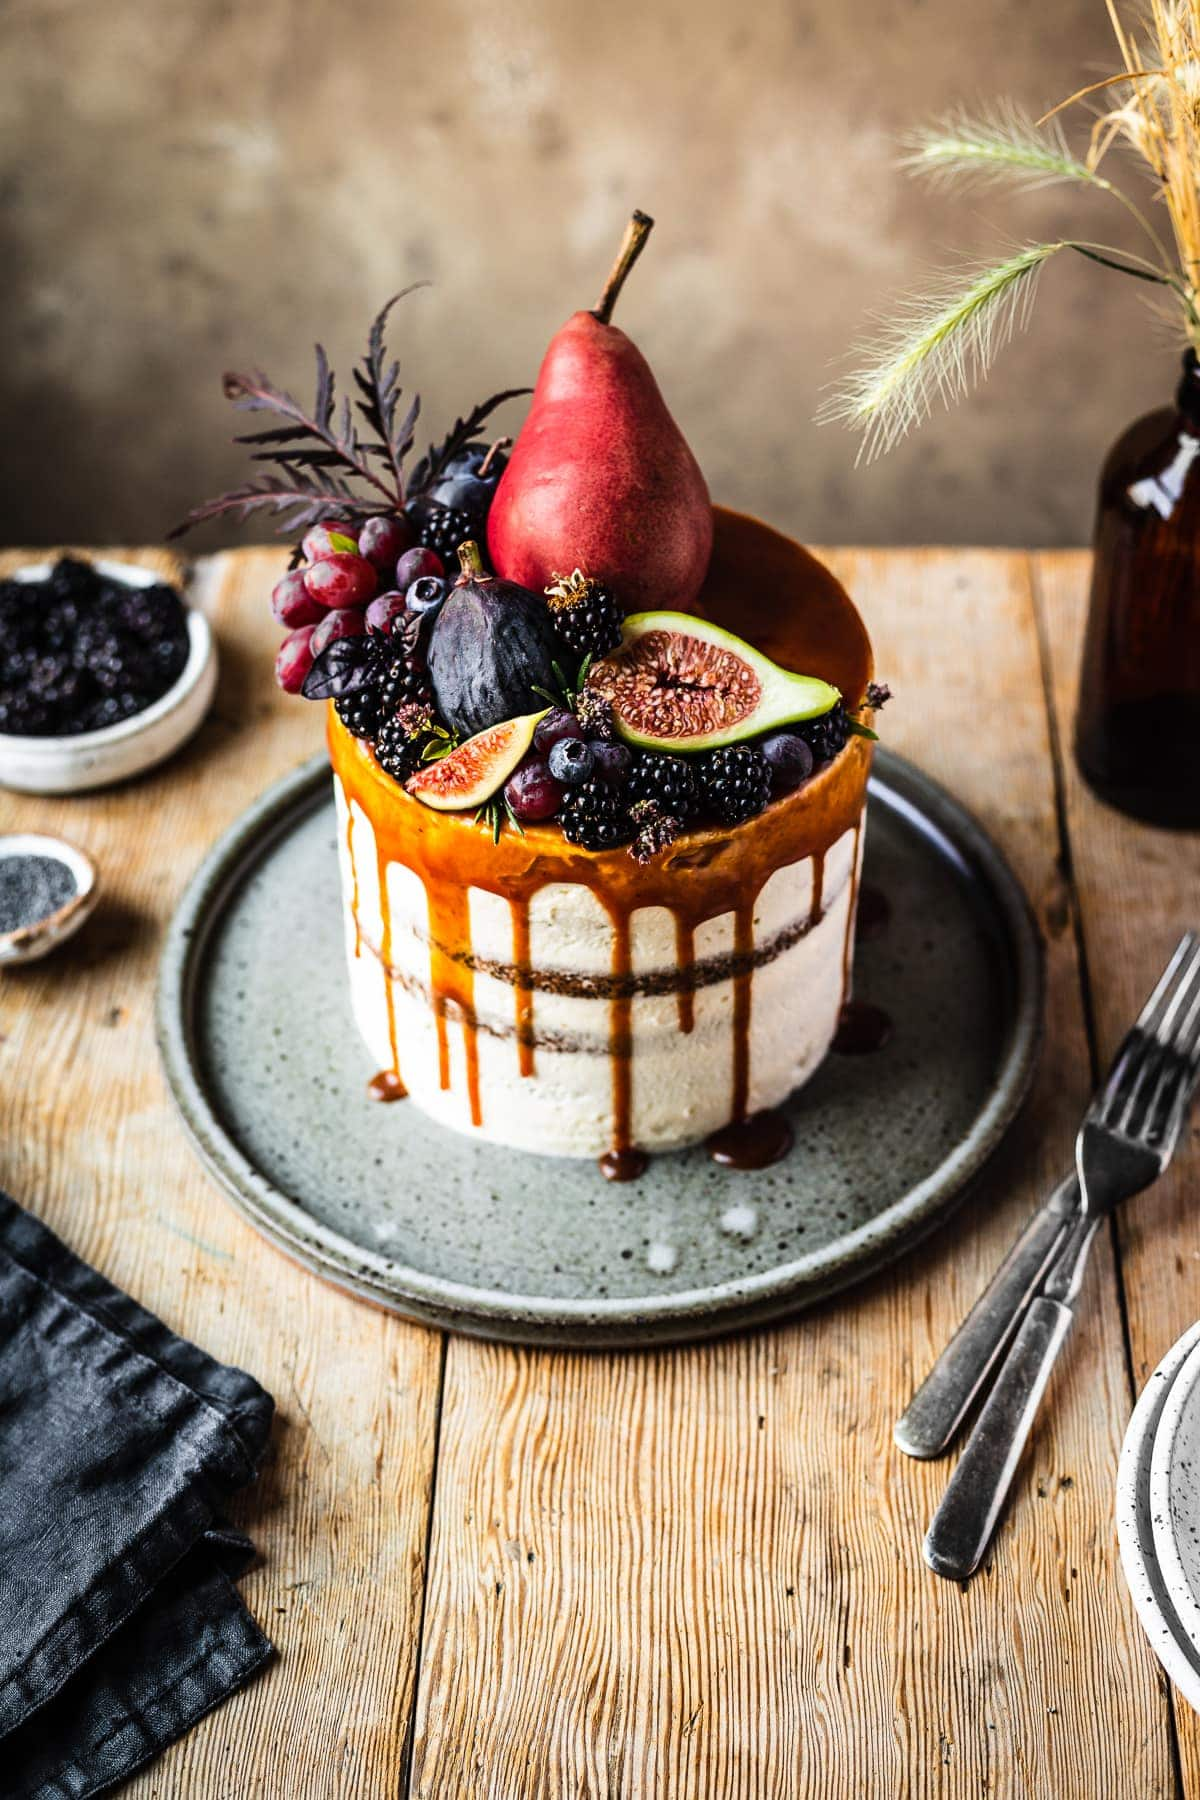 A 45 degree angle view of a layer cake with a caramel drip and a crown of late summer fruit on top. The cake sits on a blue grey ceramic platter on a rustic wooden table with forks, a dark blue linen napkin, and small bowls of poppy seeds and blackberries nearby. There is a warm tan stone background behind the table.